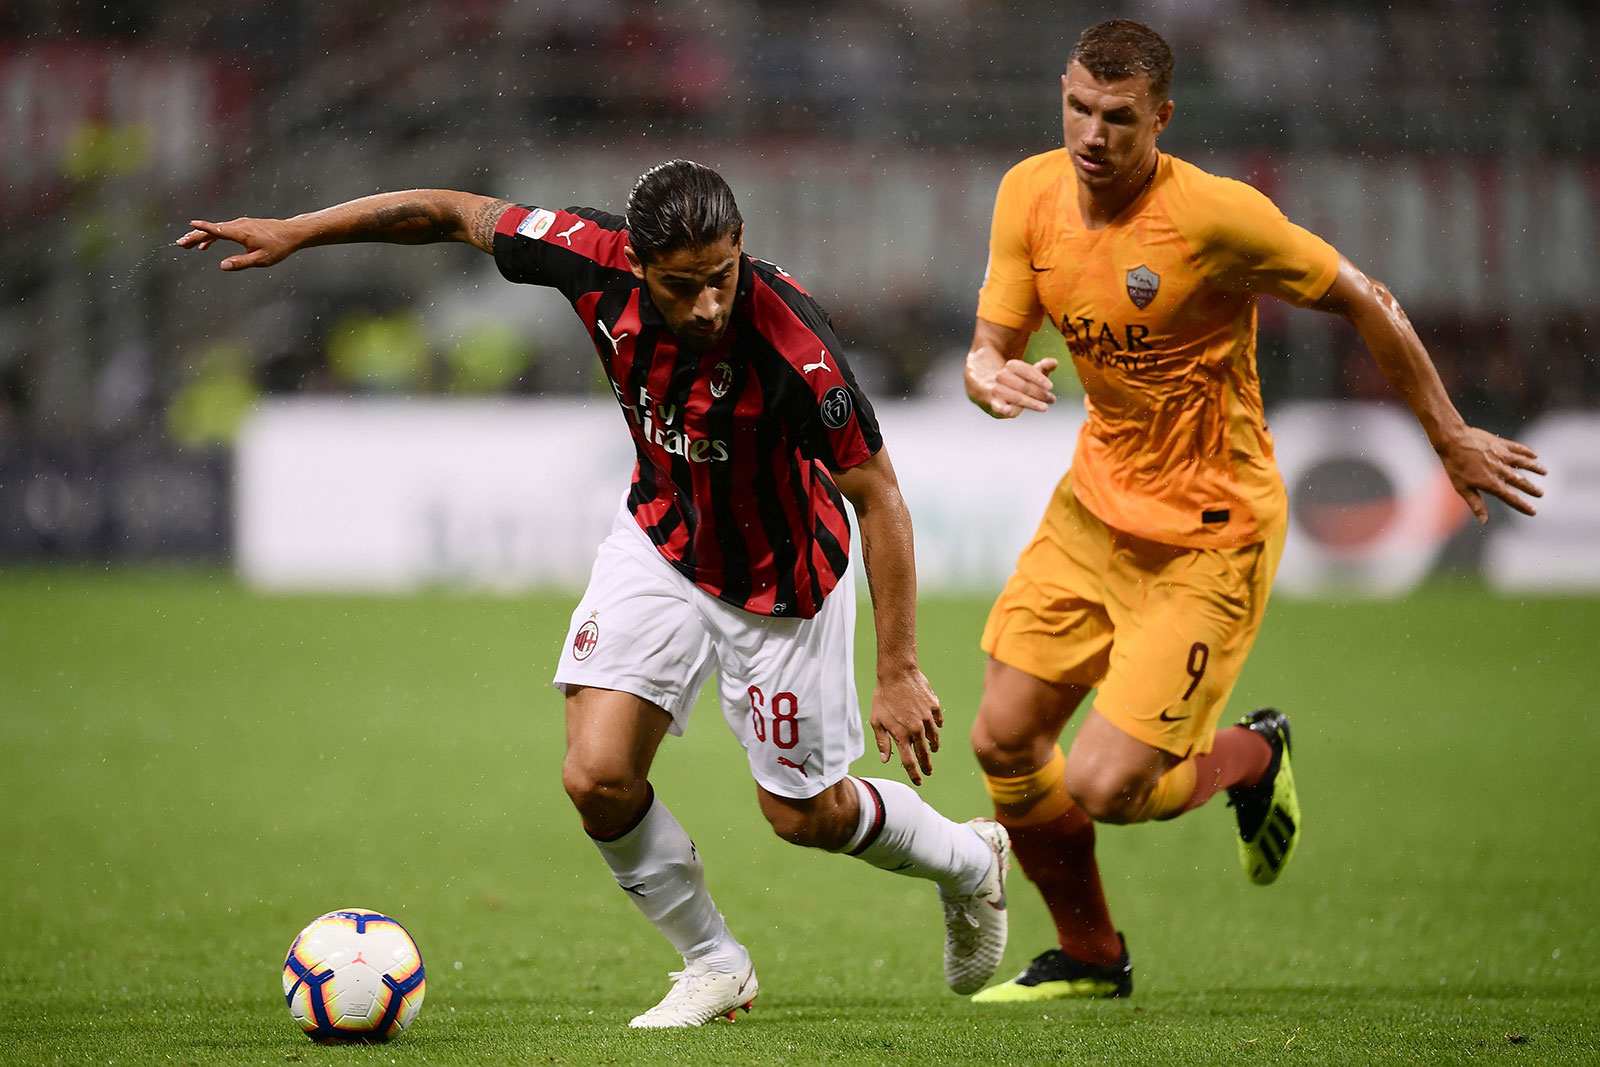 Ricardo Rodriguez and Edin Džeko during Milan-Roma at Stadio San Siro on August 31, 2018. (MARCO BERTORELLO/AFP/Getty Images)